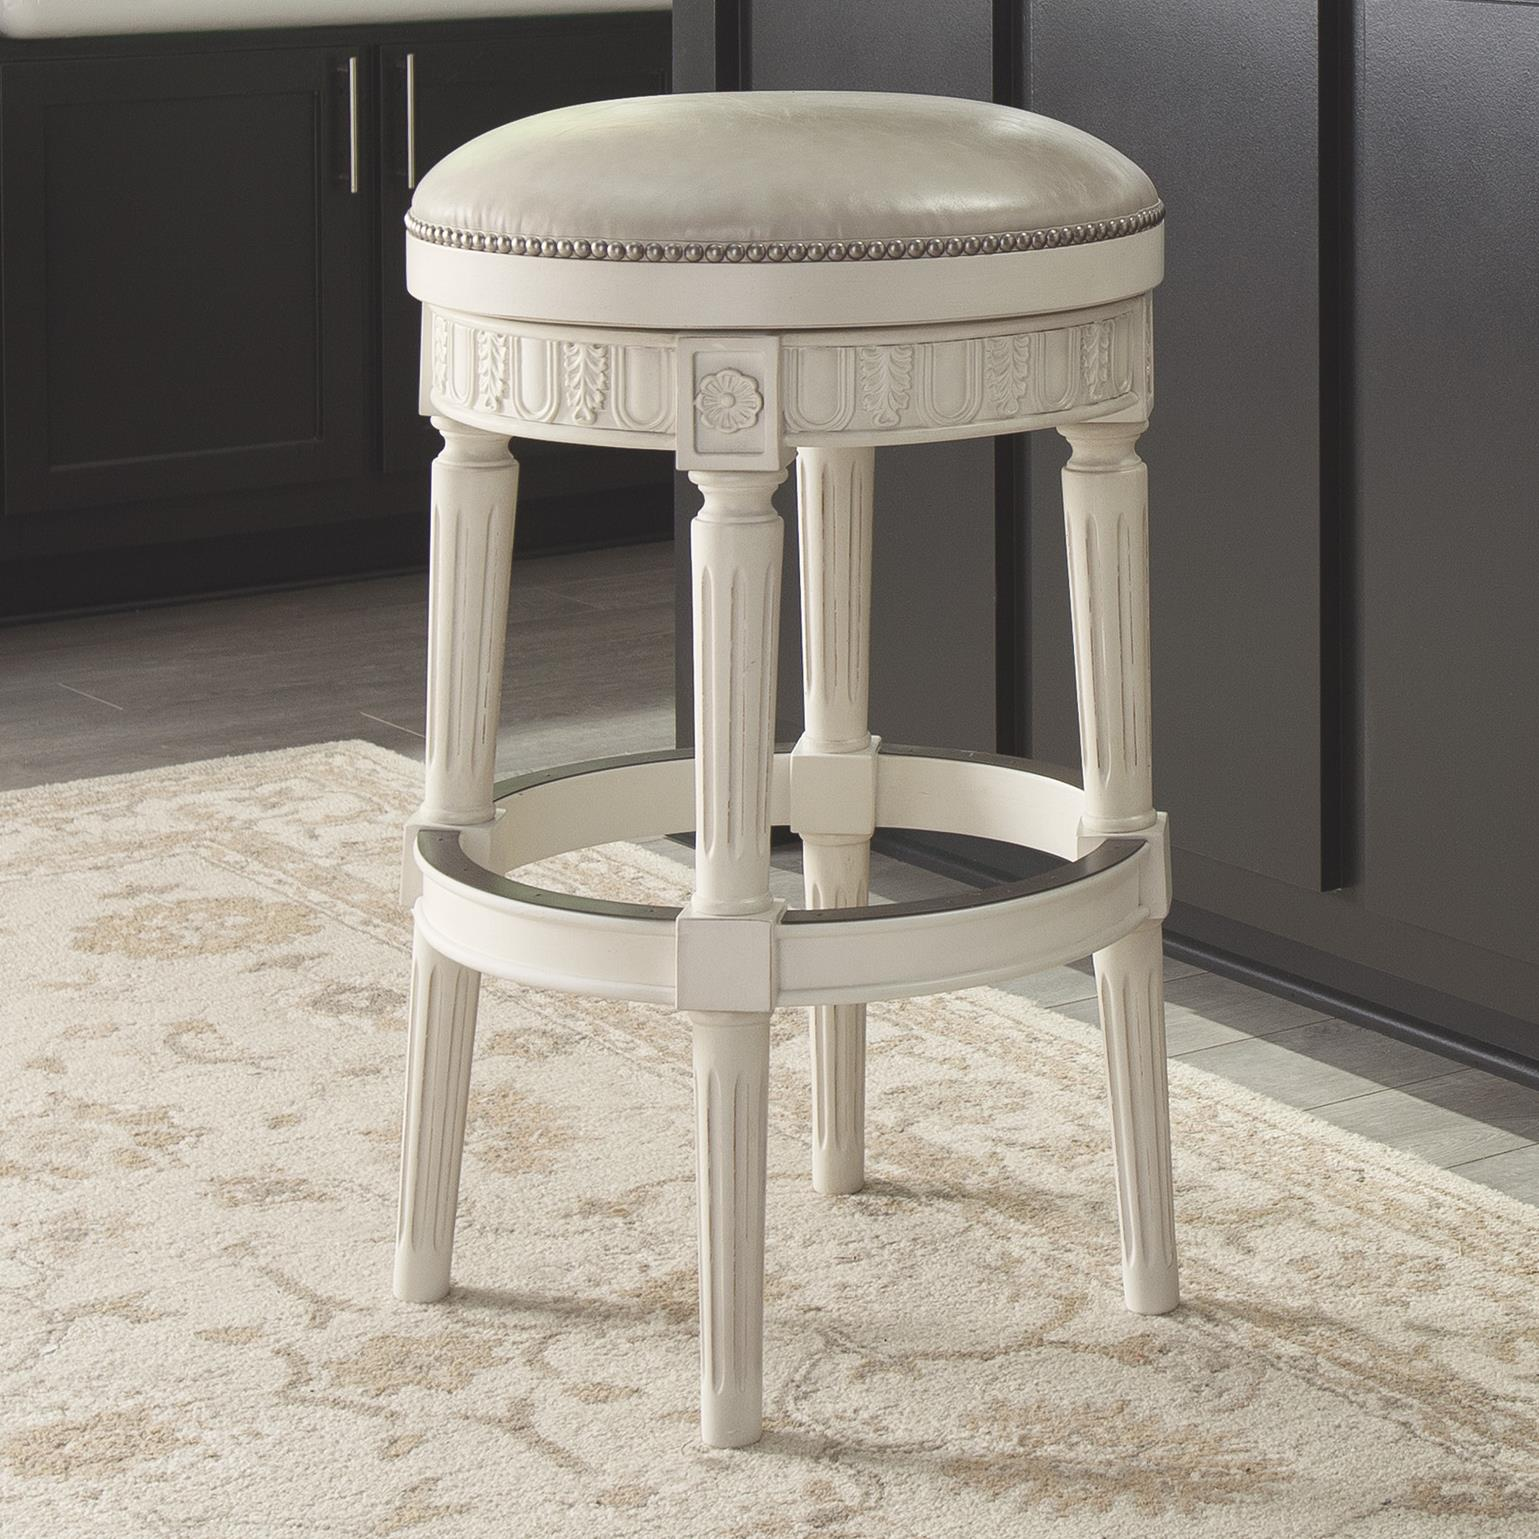 Signature Design by Ashley Crenlam Tall Upholstered Swivel Stool - Item Number: D562-030